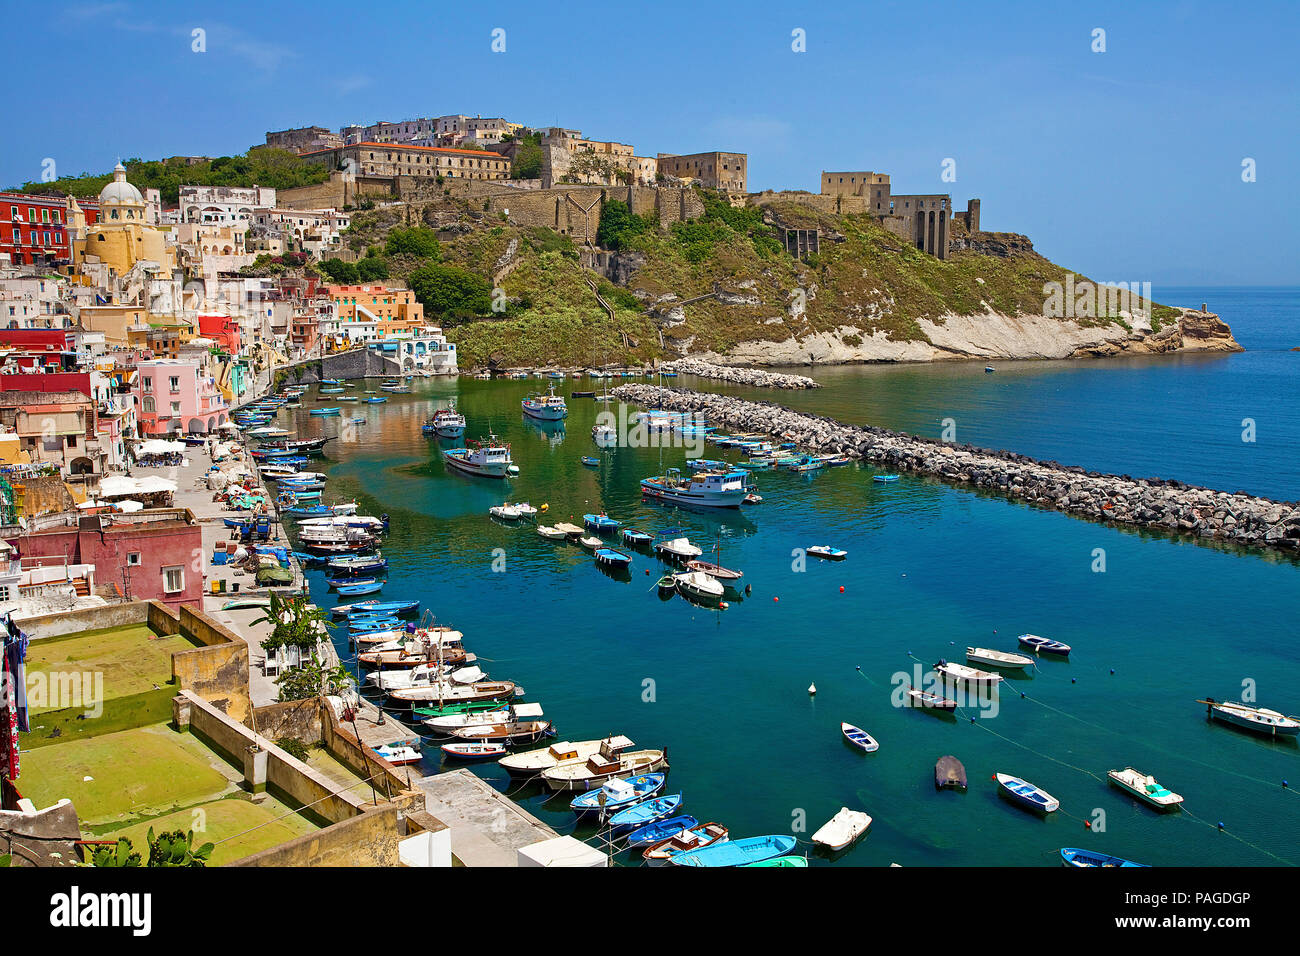 The fishing village Procida with fishing harbour Marina di Corricella and fortress Terra Murata, a former prison, Gulf of Naples, Italy - Stock Image